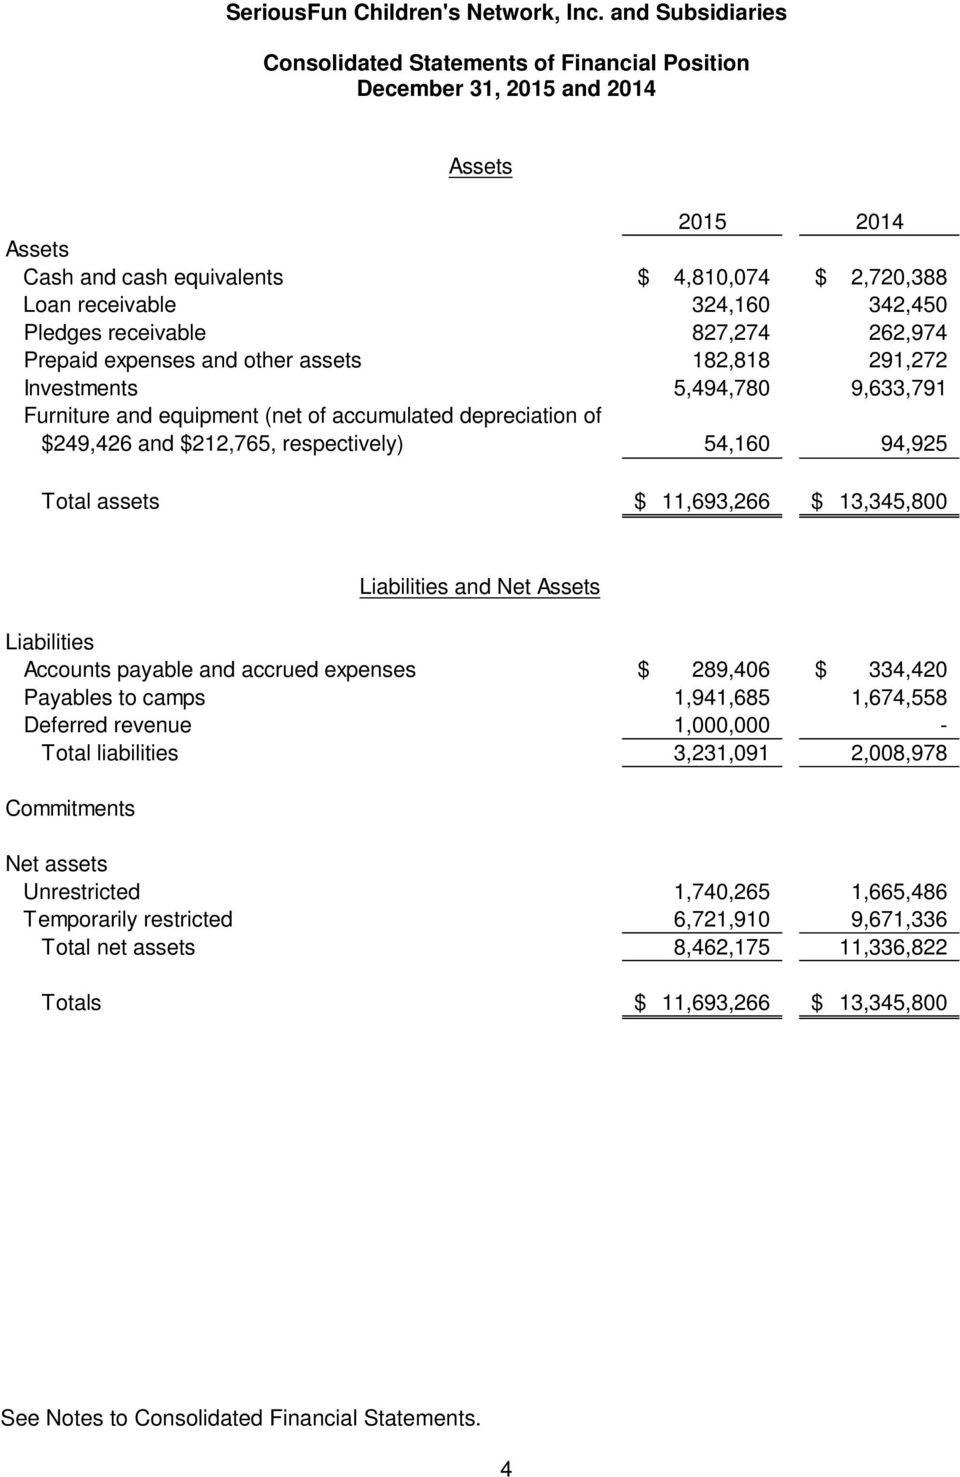 54,160 94,925 Total assets $ 11,693,266 $ 13,345,800 Liabilities Accounts payable and accrued expenses $ 289,406 $ 334,420 Payables to camps 1,941,685 1,674,558 Deferred revenue 1,000,000 - Total